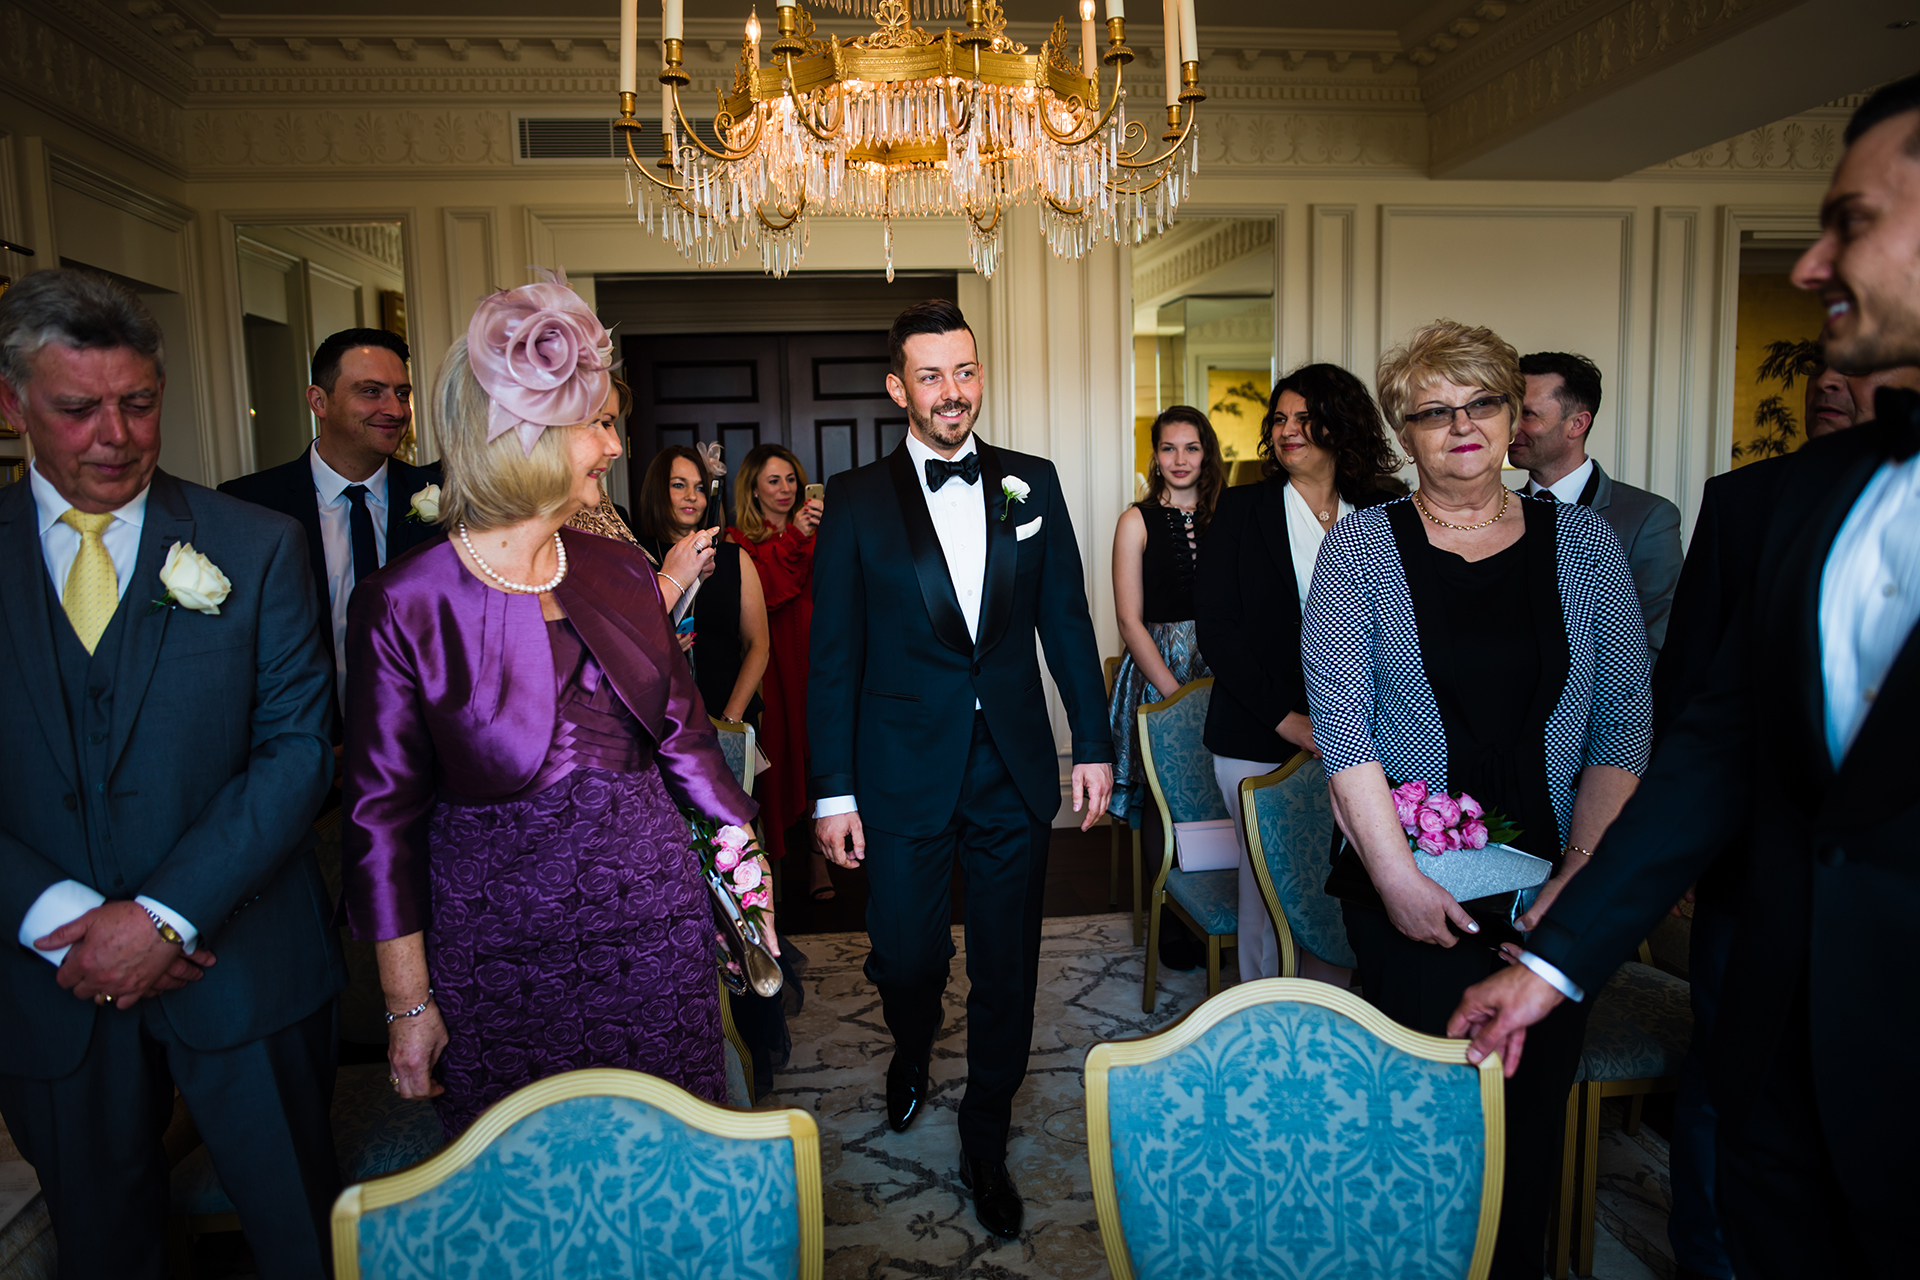 The Savoy Hotel - England Elopement Ceremony Image | arriving at the ceremony